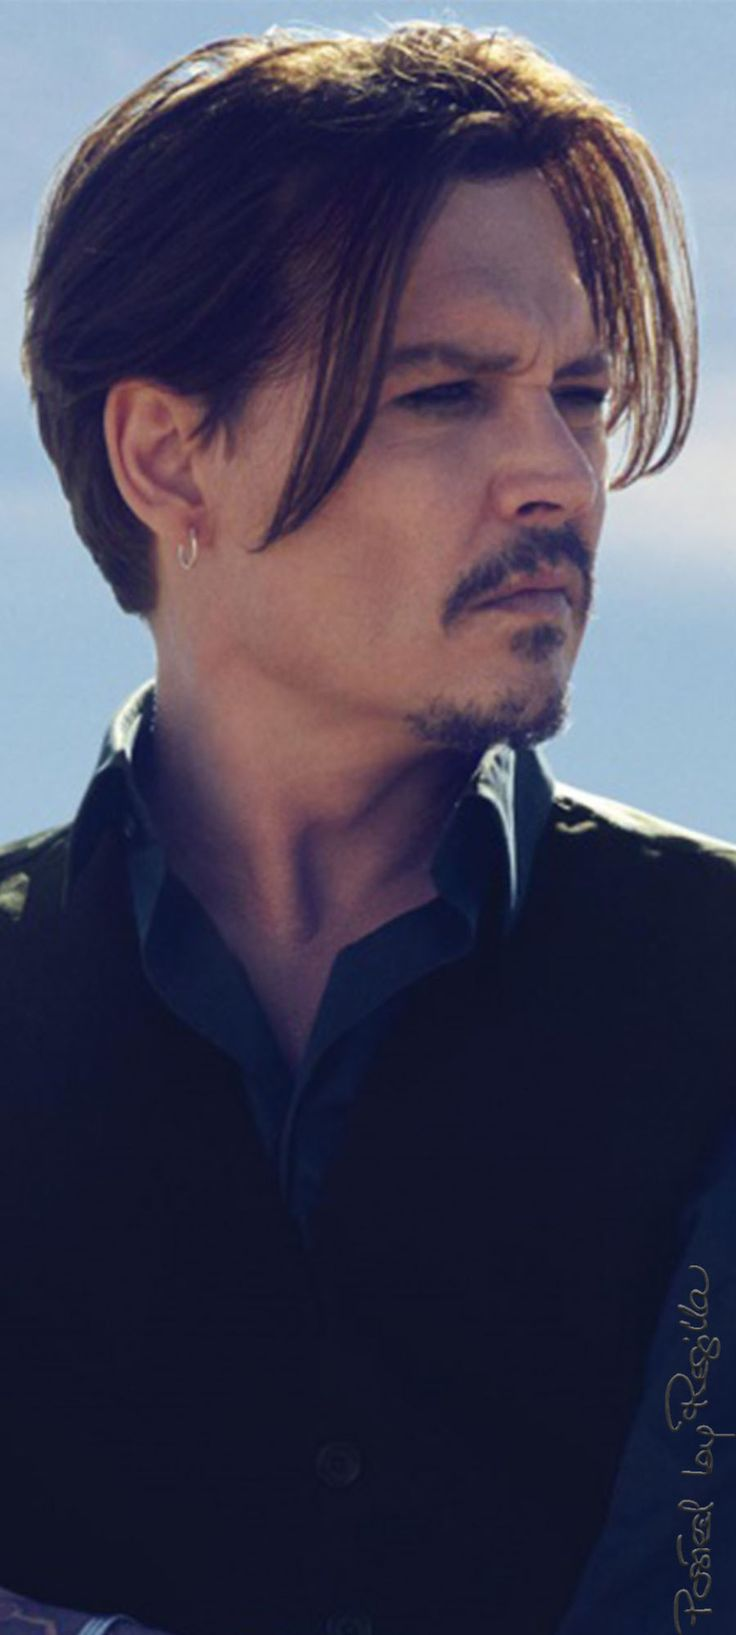 Regilla ⚜ Johnny Depp